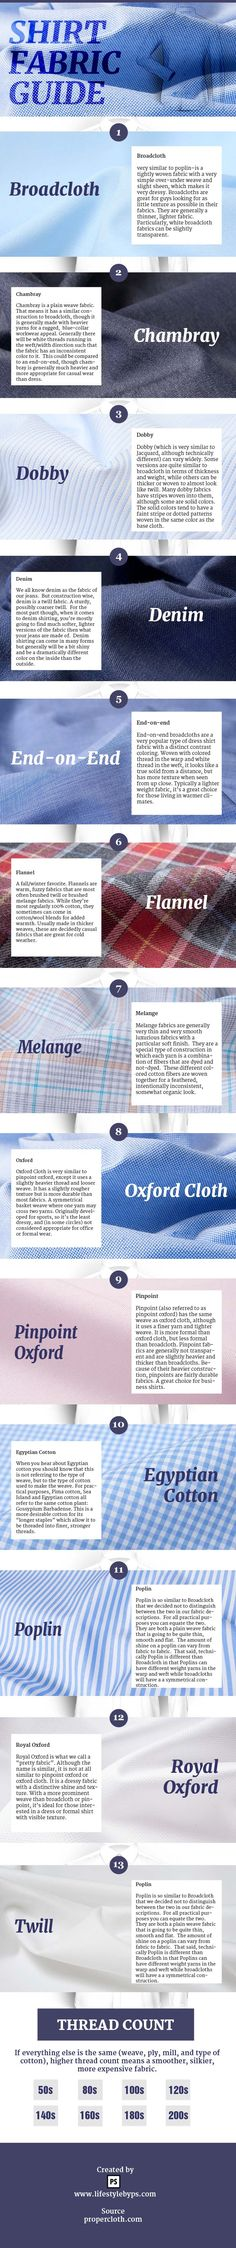 Different type of shirts fabric Infographic